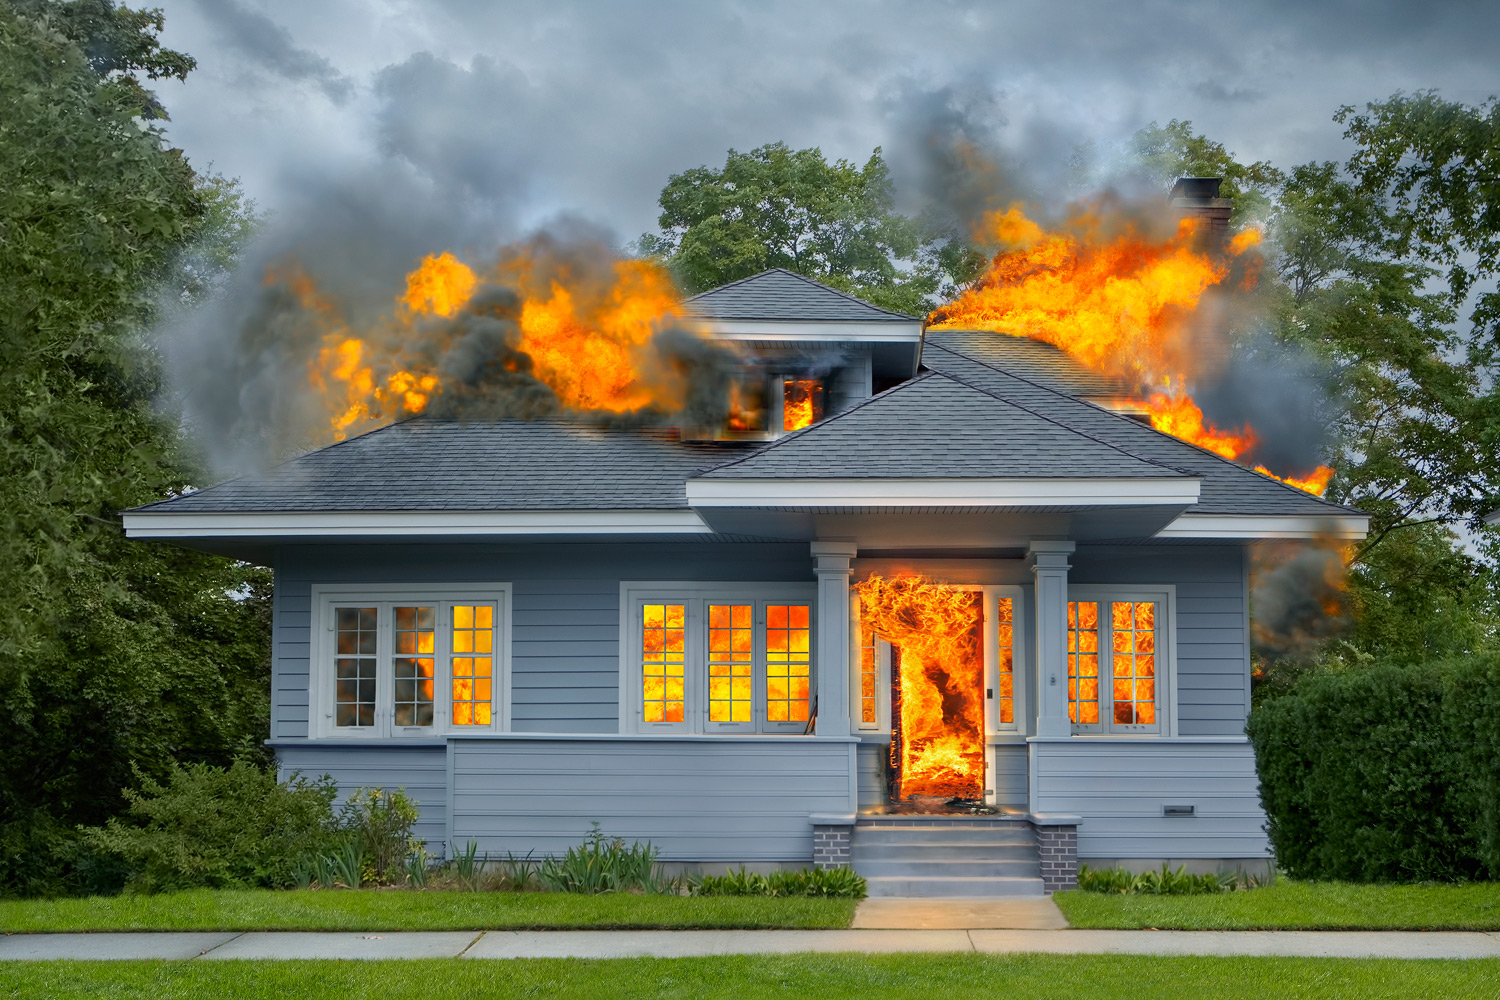 FIRE/PROPERTY INSURANCE